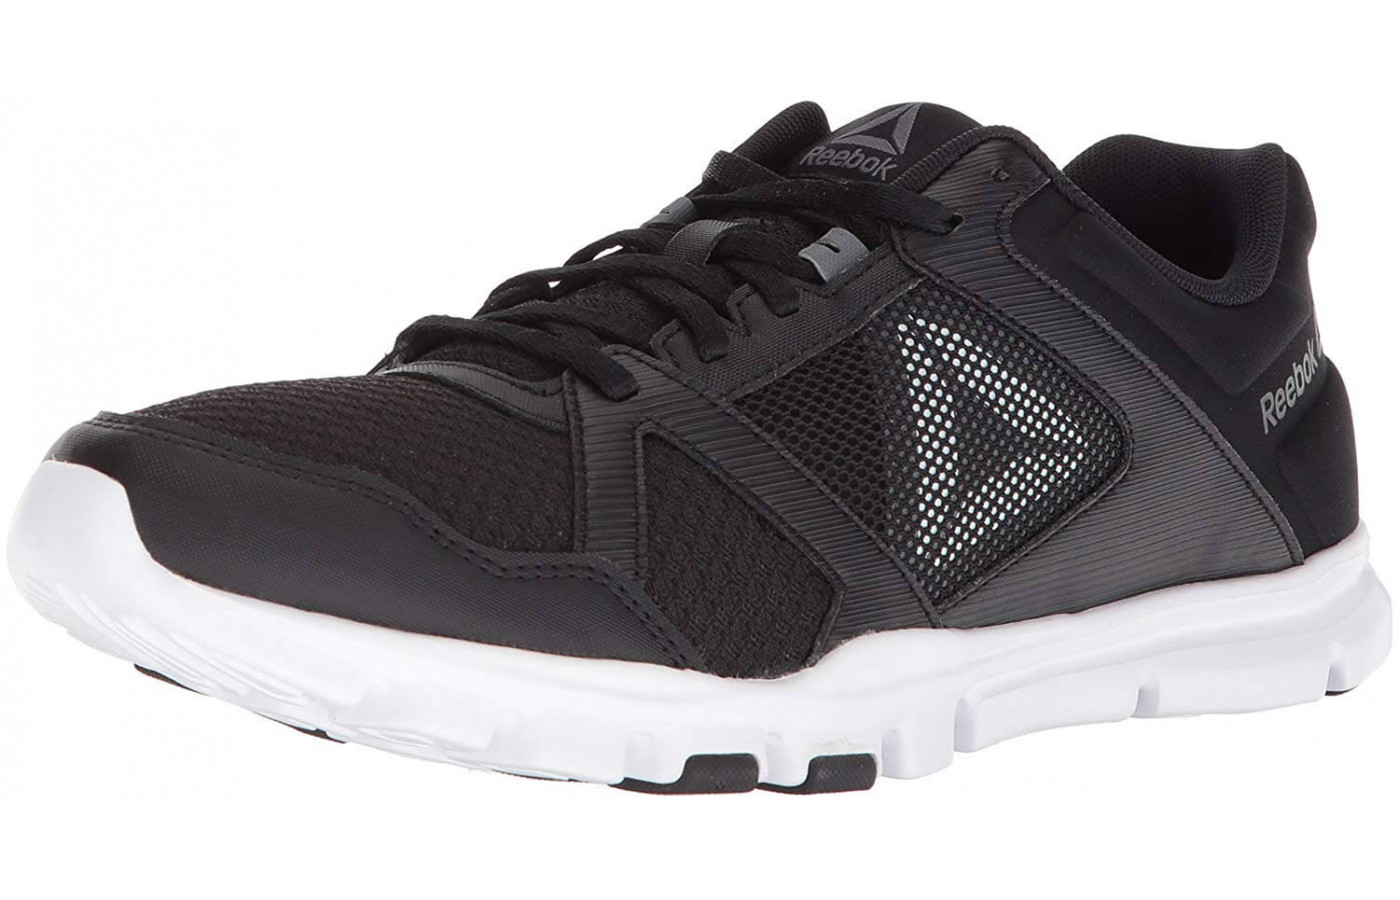 7234e0a8d71 Reebok Yourflex Train 10 - To Buy or Not in May 2019